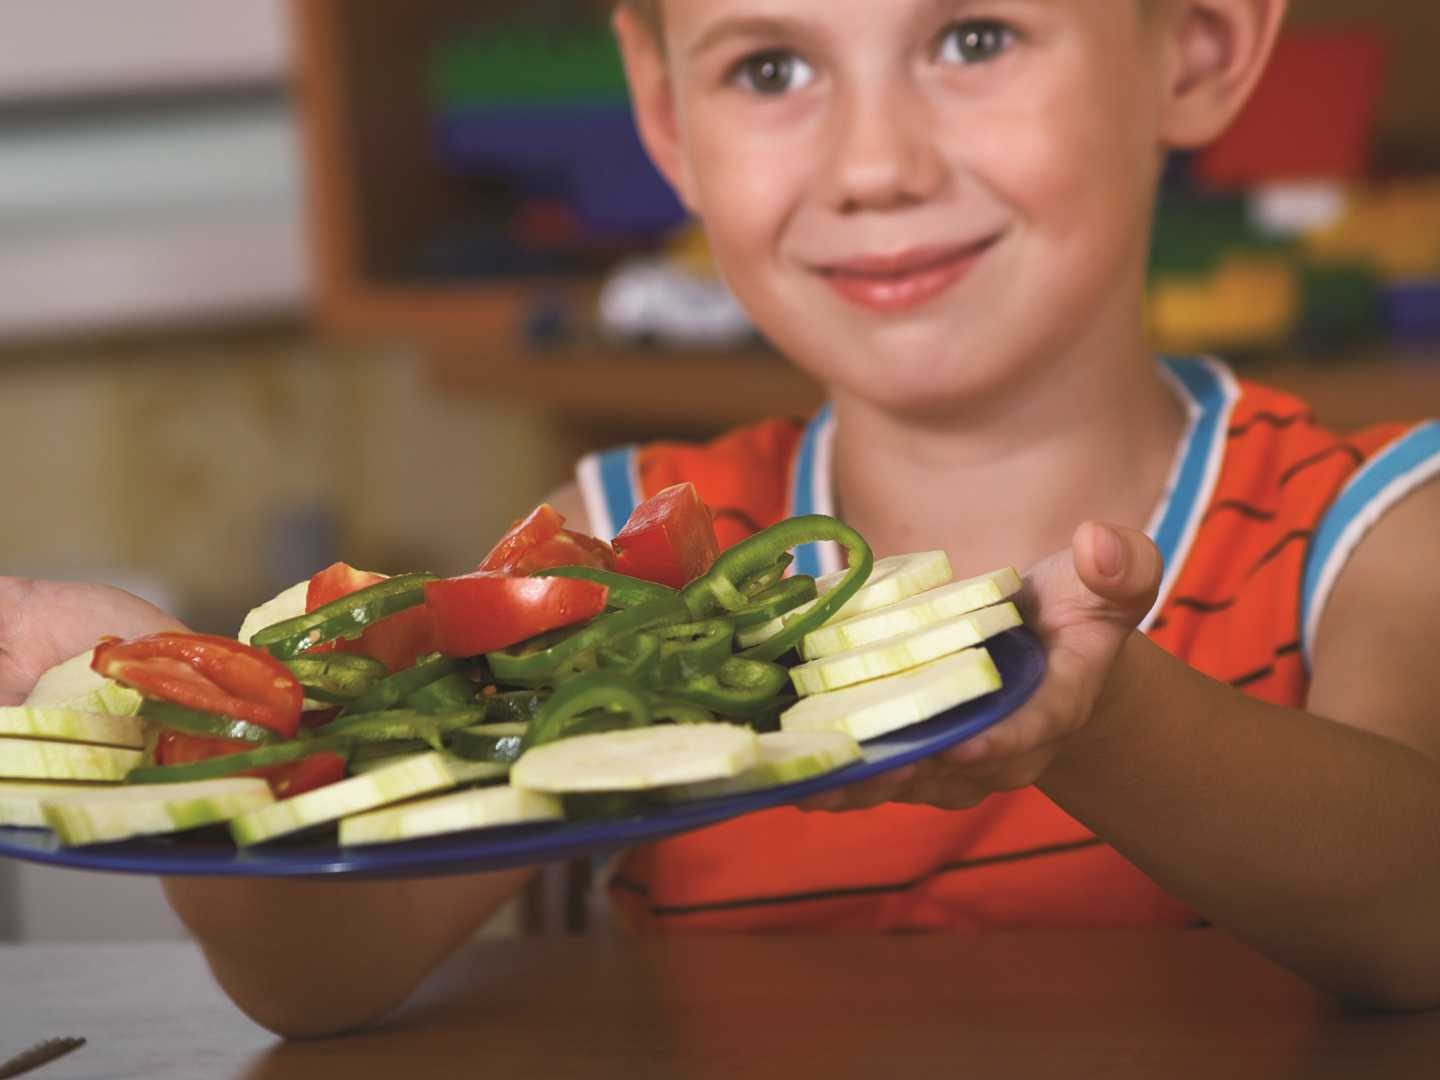 Kid Holding Plate Of Veggies